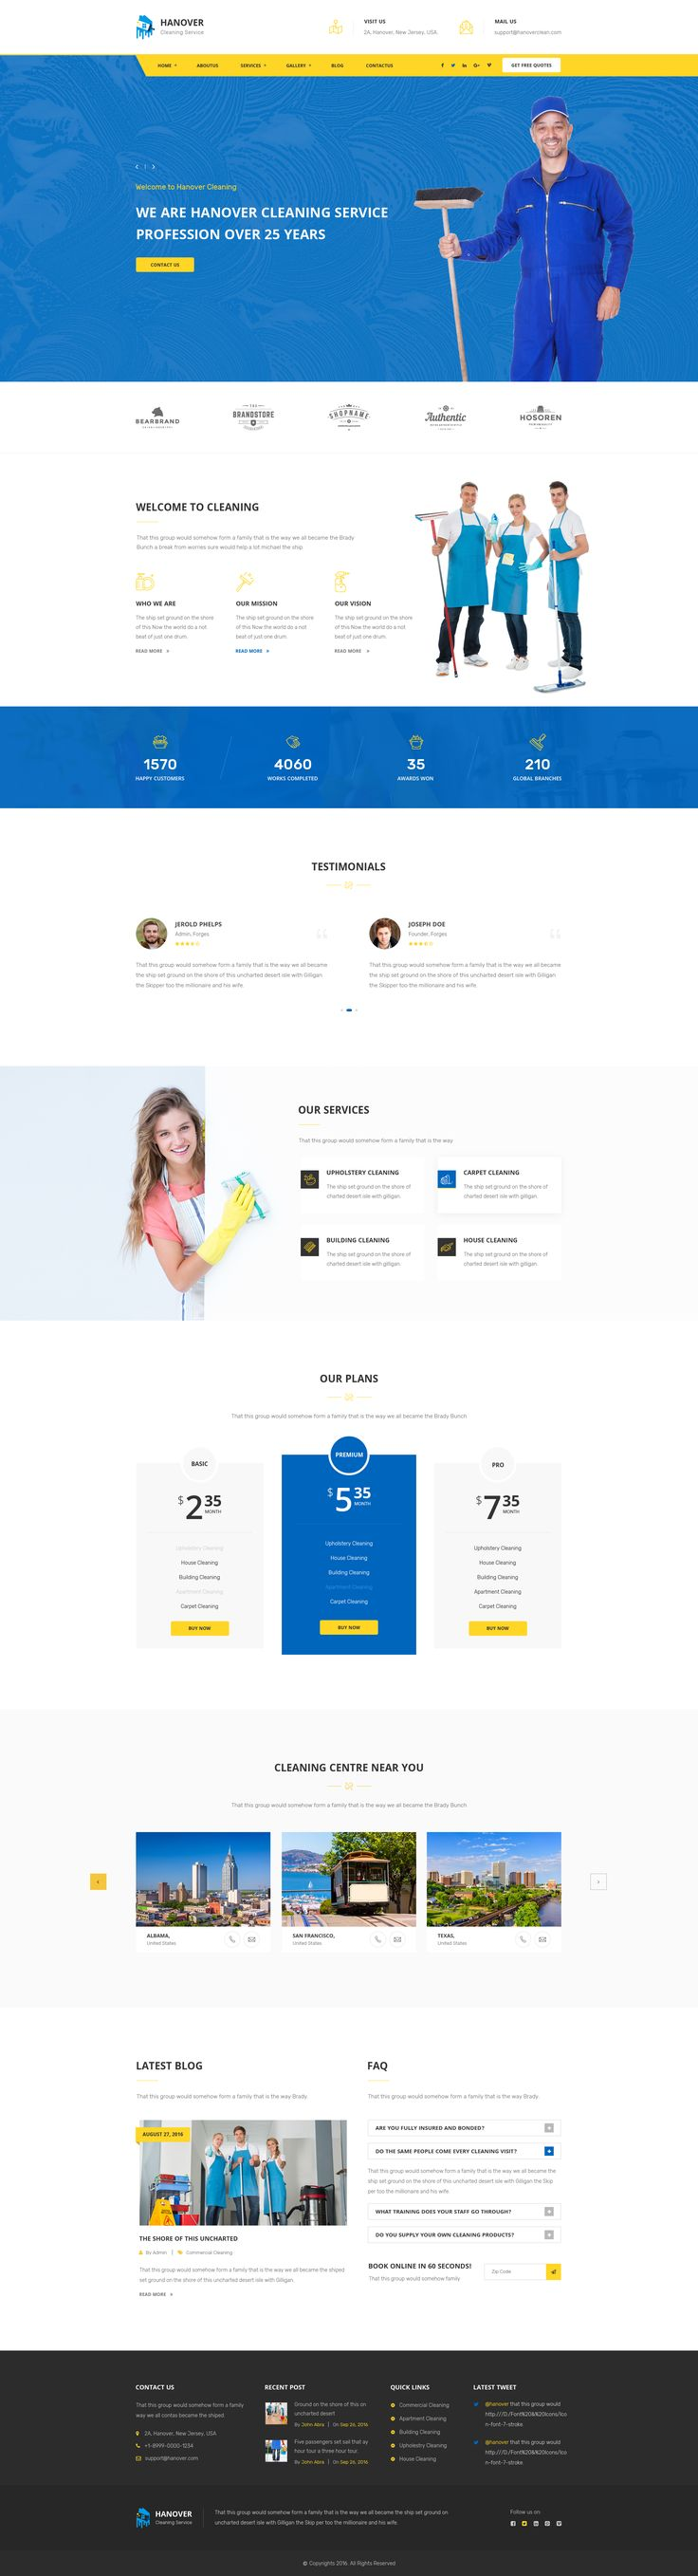 Hanover : Cleaning Services PSD Template #psd #maintenance #contractor • Download ➝ https://themeforest.net/item/hanover-cleaning-services-psd-template/18962271?ref=pxcr